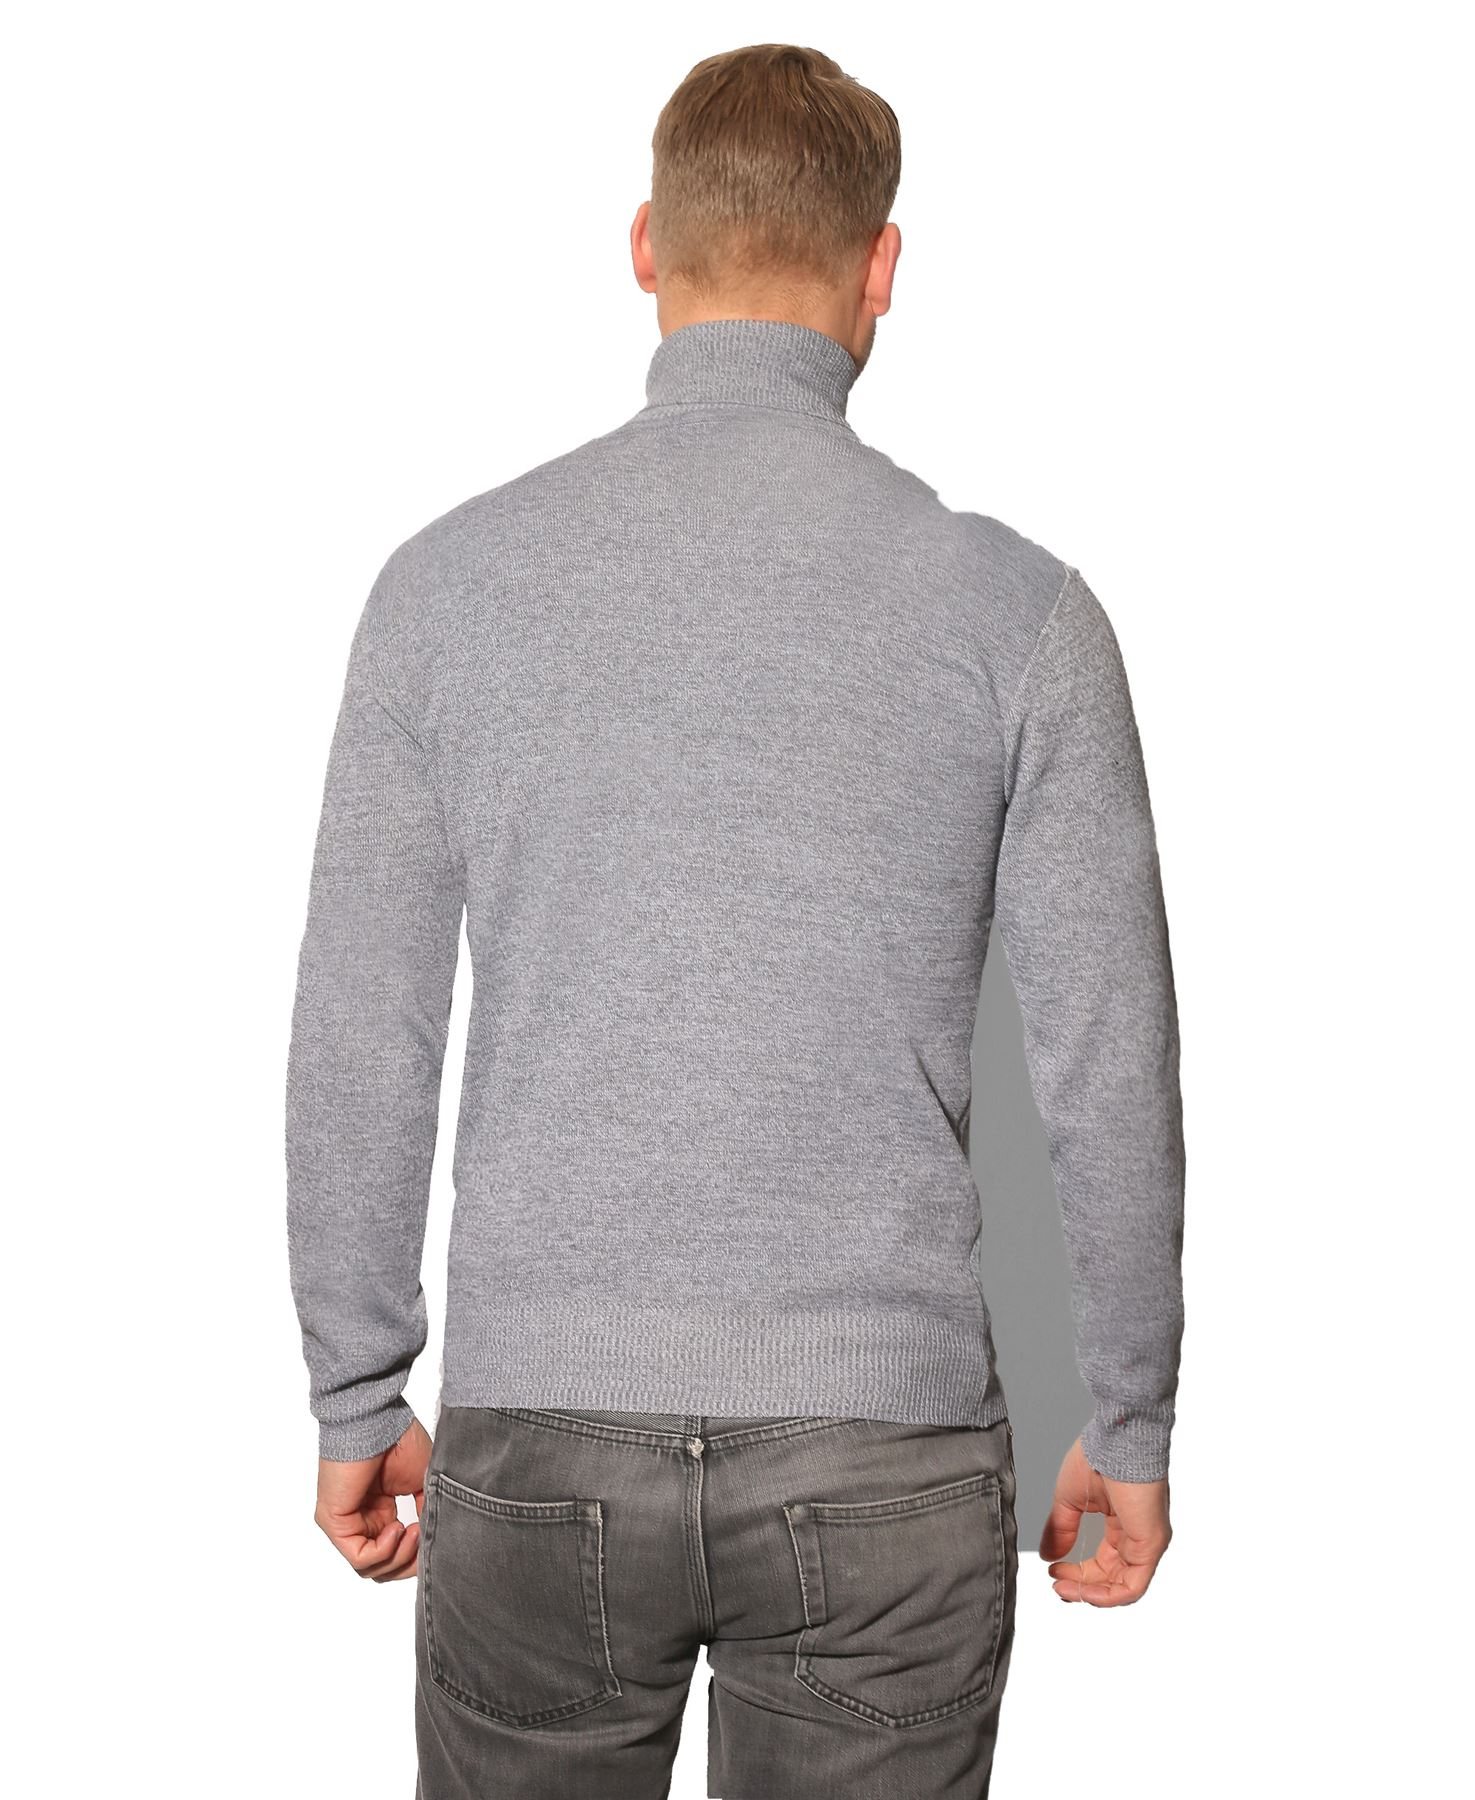 Mens-Turtle-Neck-Roll-Jumper-Sweater-Cotton-Knitwear-Winter-Pullover-Polo-Top thumbnail 15